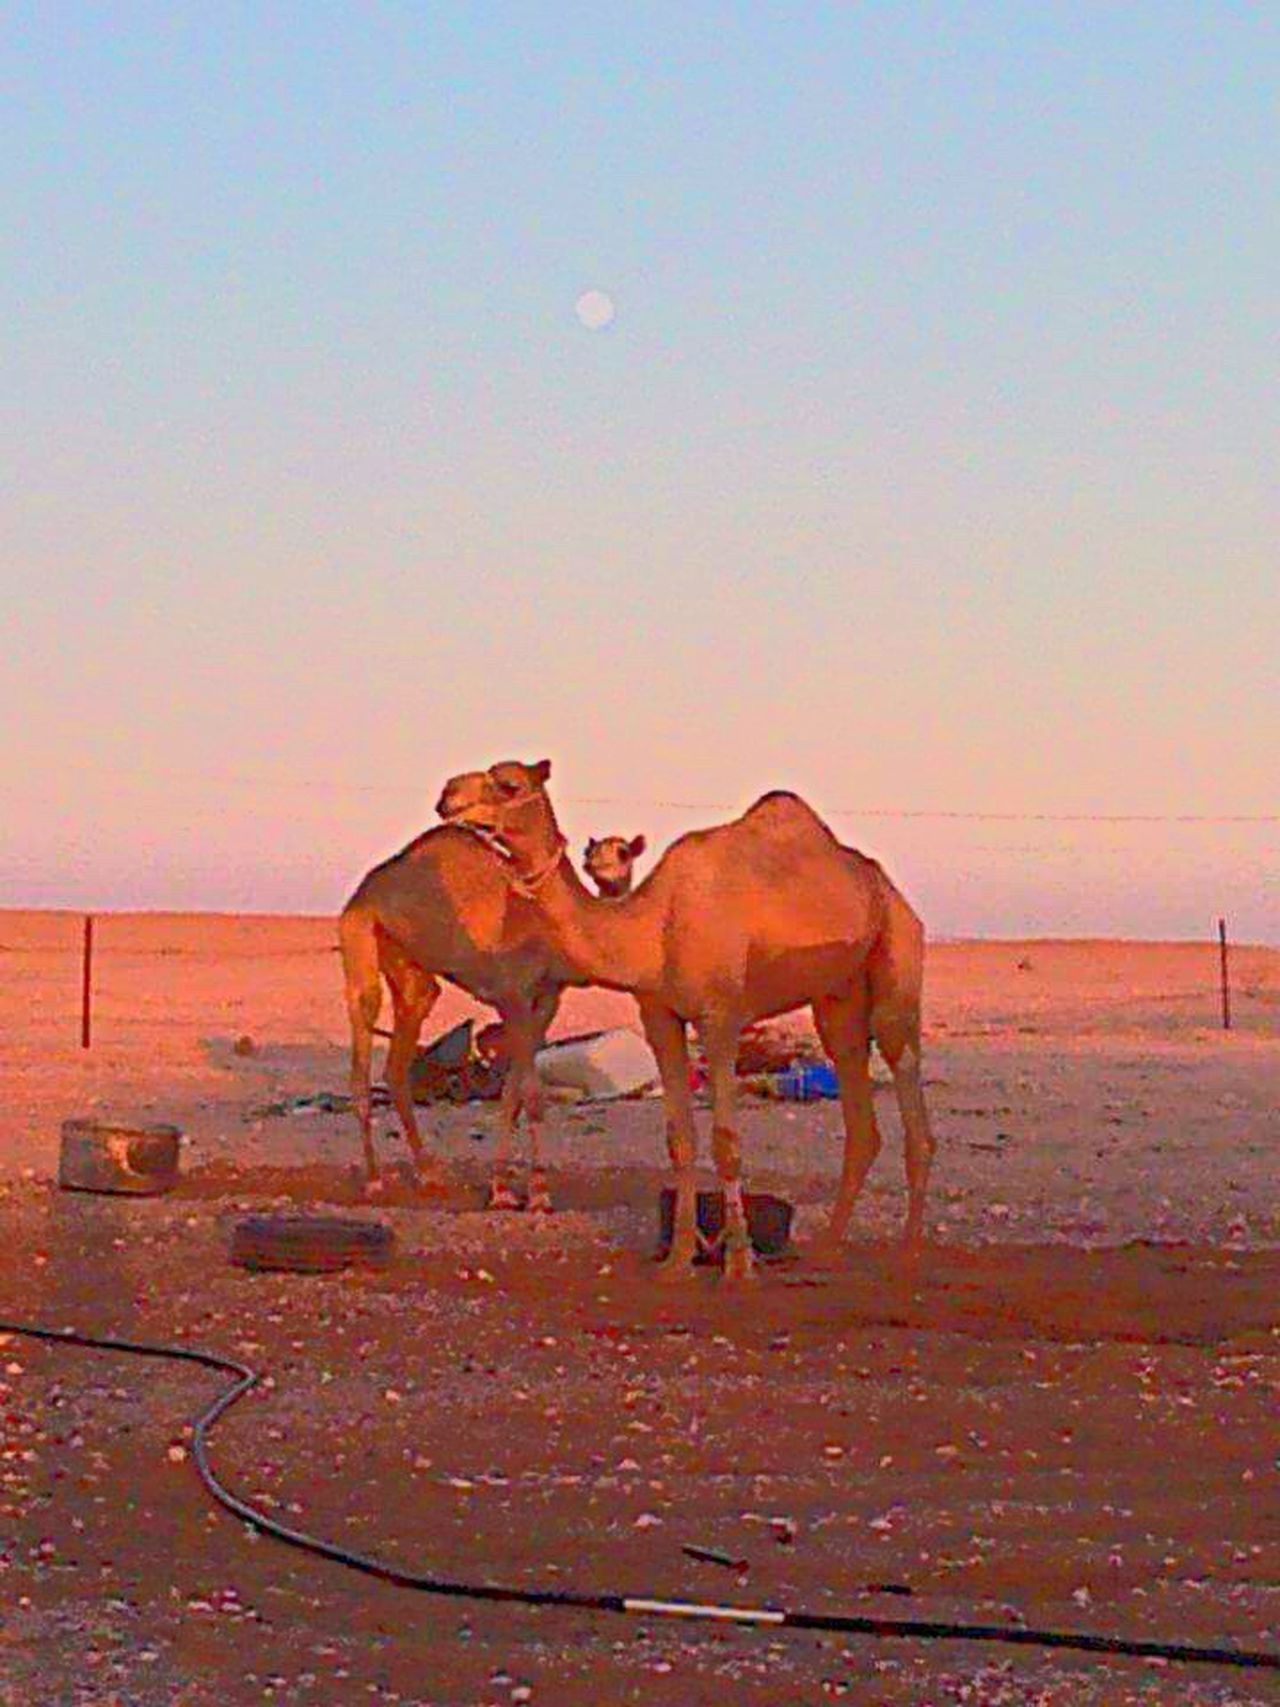 Travel Travel Photography Desert Desert Life Qatar I ❤ Qatar Camels We Love Camels!